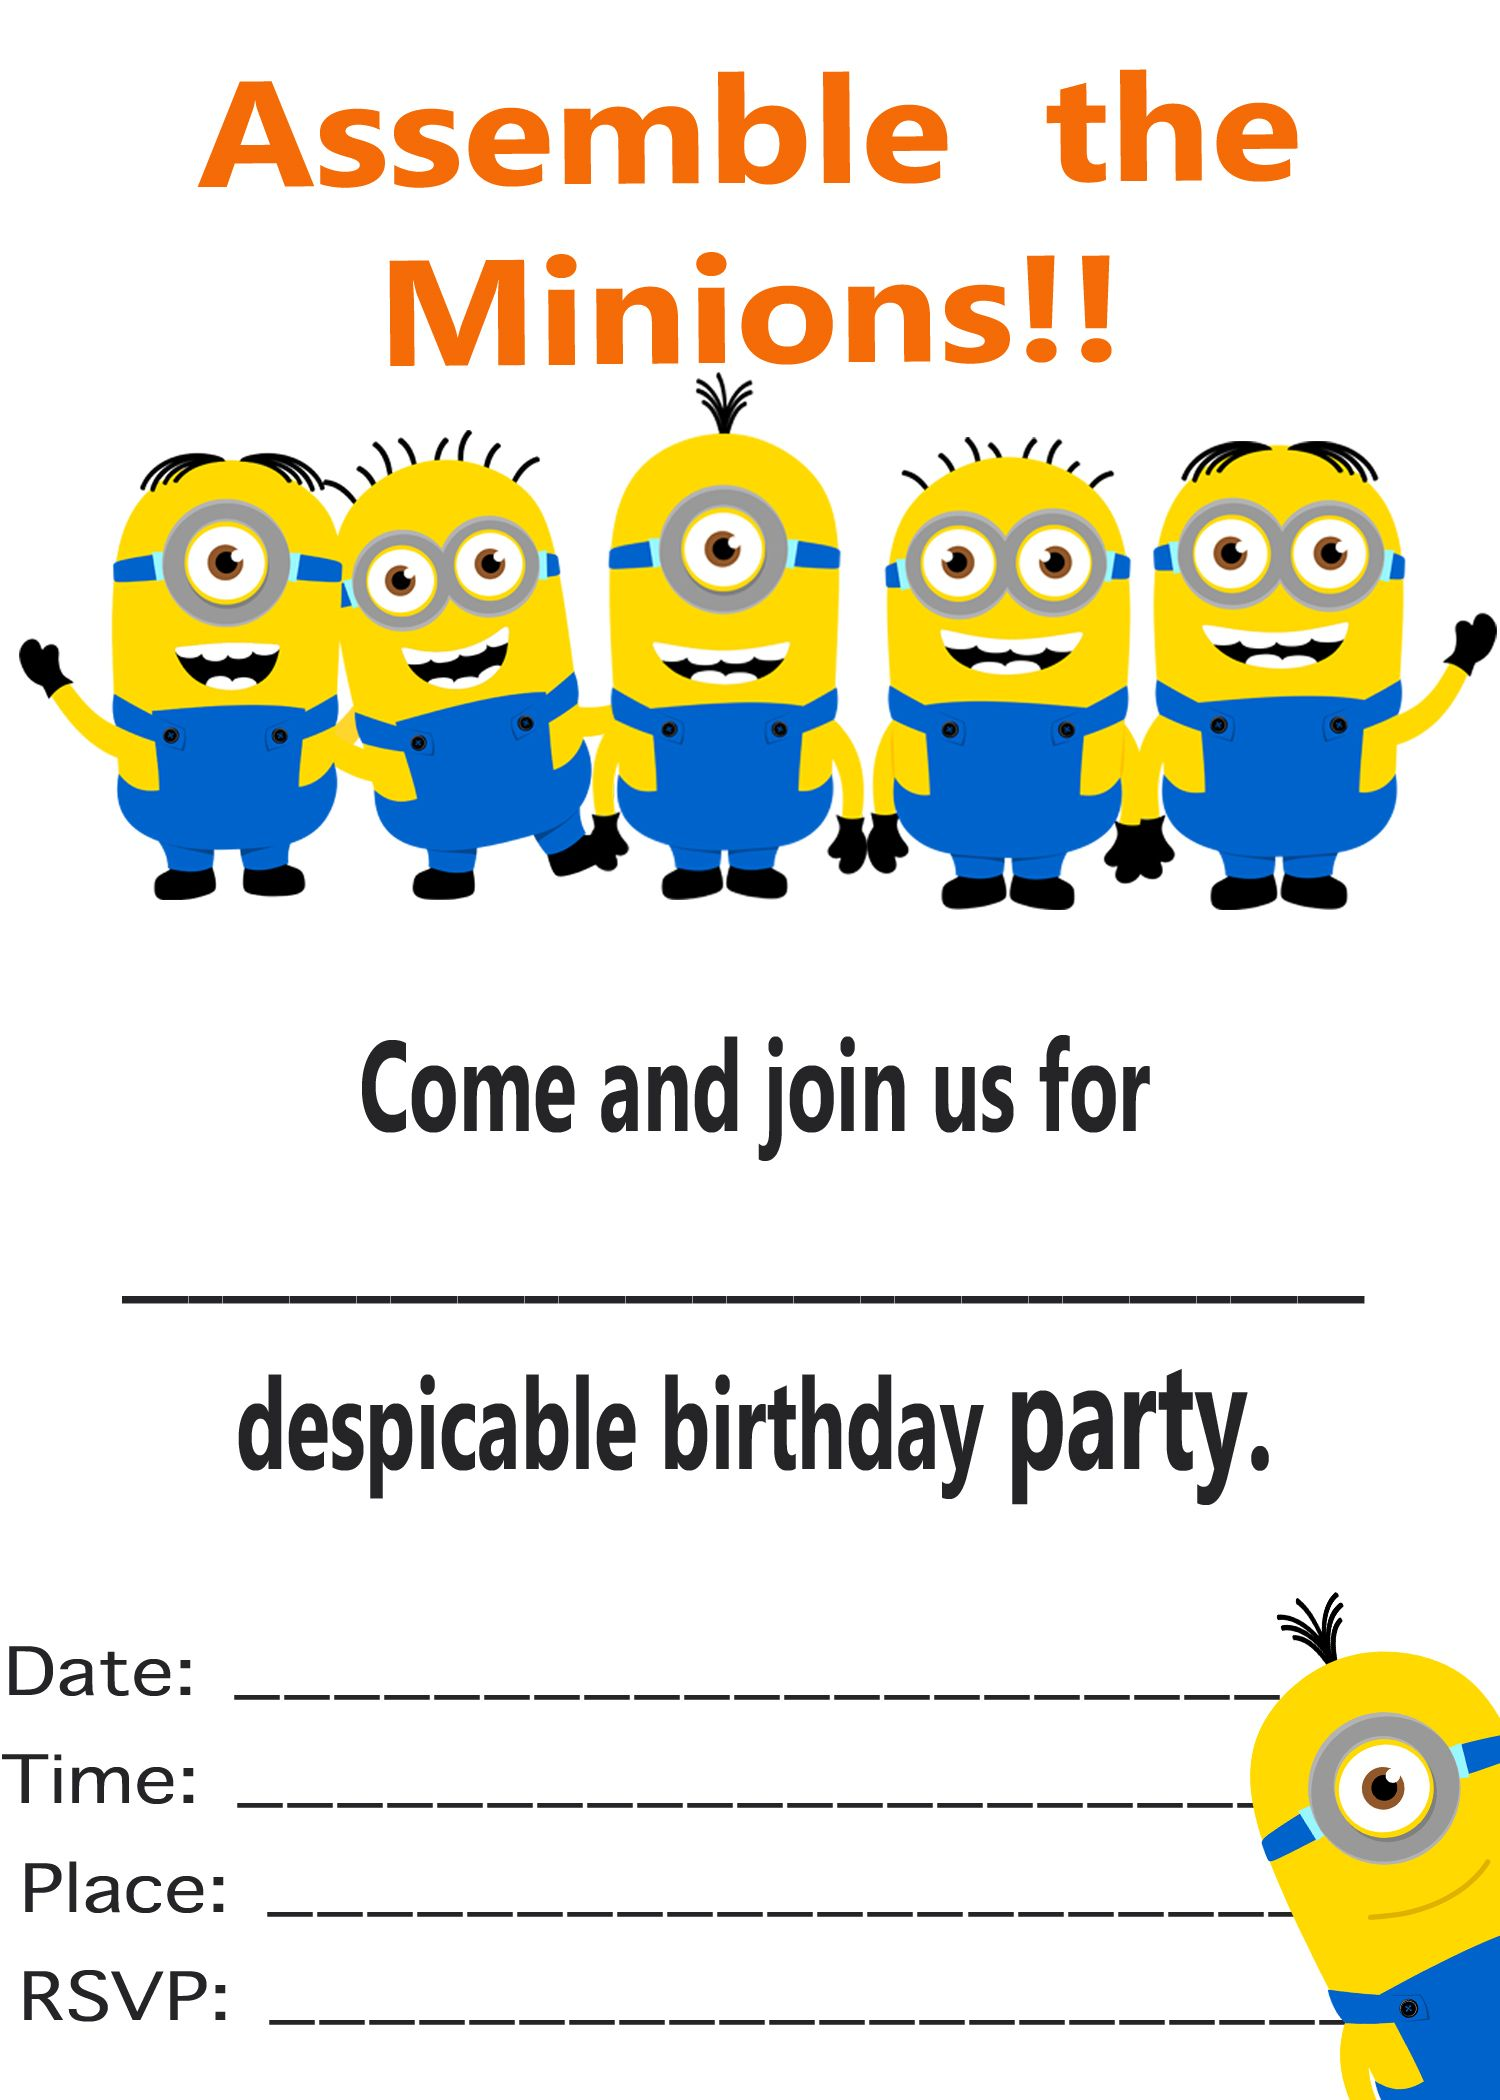 party invitations trend invitations today birthday party party invitations trend invitations today birthday party